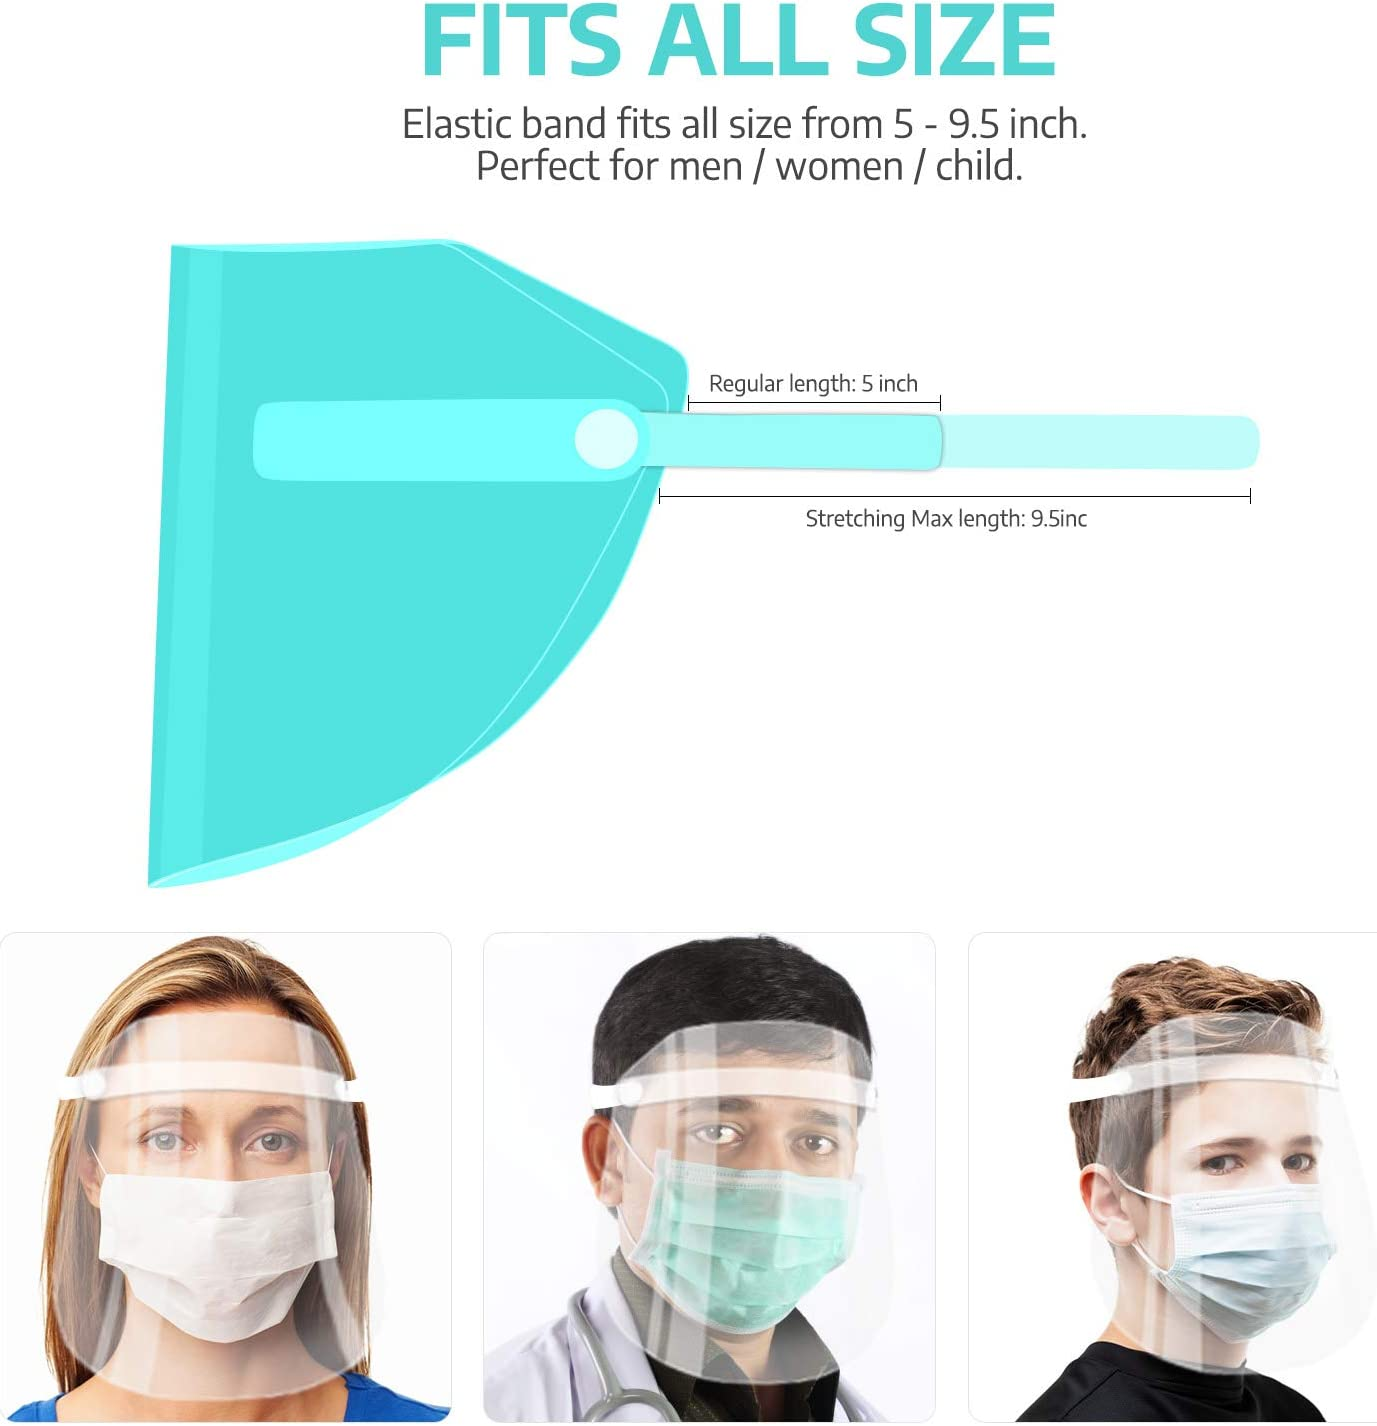 Free Amazon Promo Code 2020 for 10Pcs Value Pack Safety Face Shields